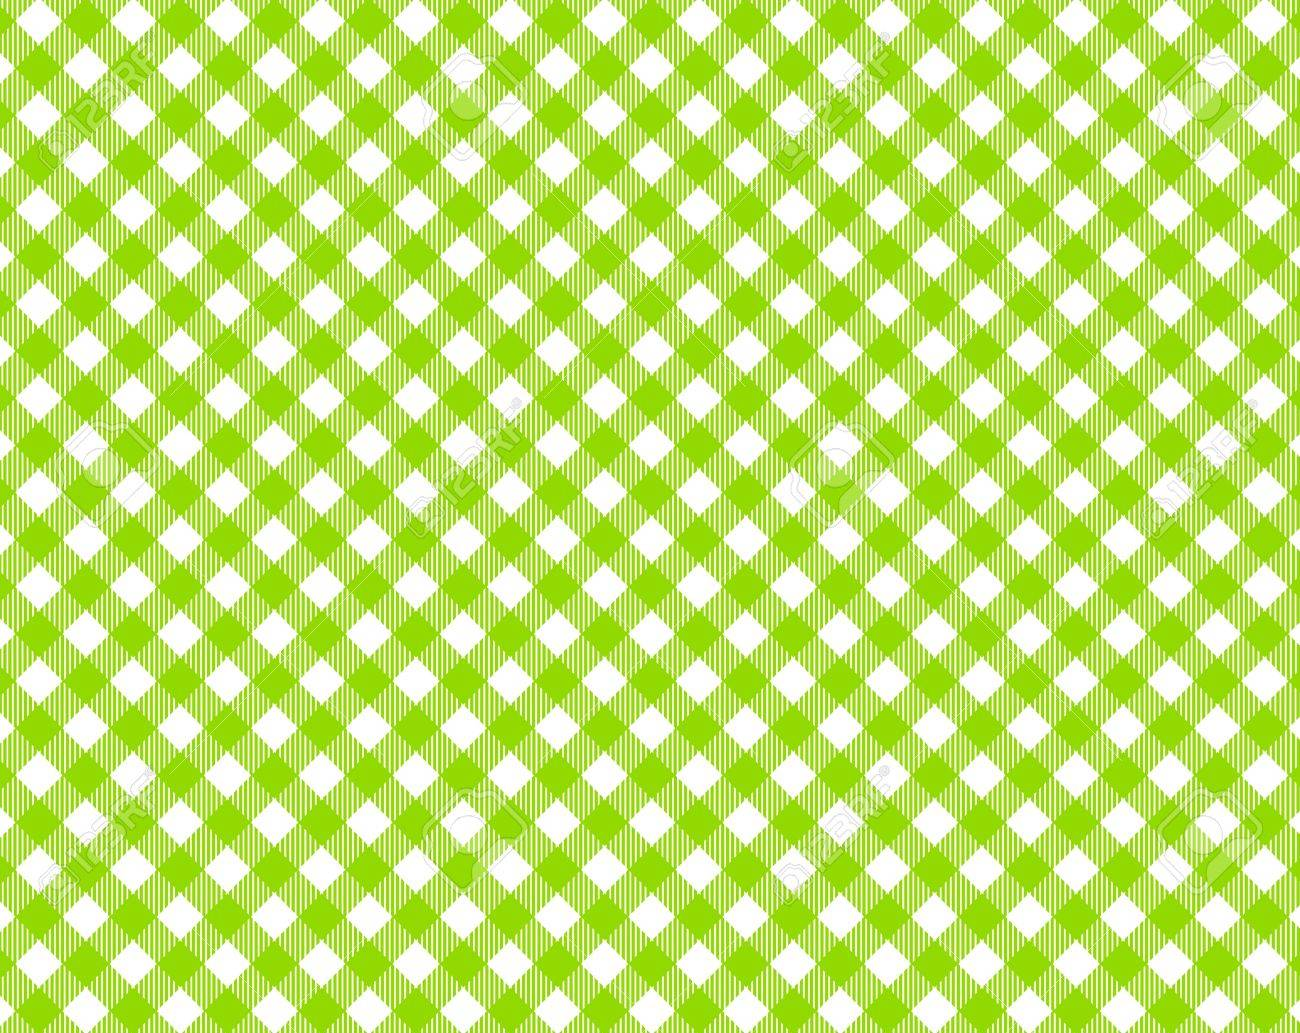 Green White Checkered Tablecloth With Diagonal Stripes Stock Photo, Picture  And Royalty Free Image. Image 17445180.